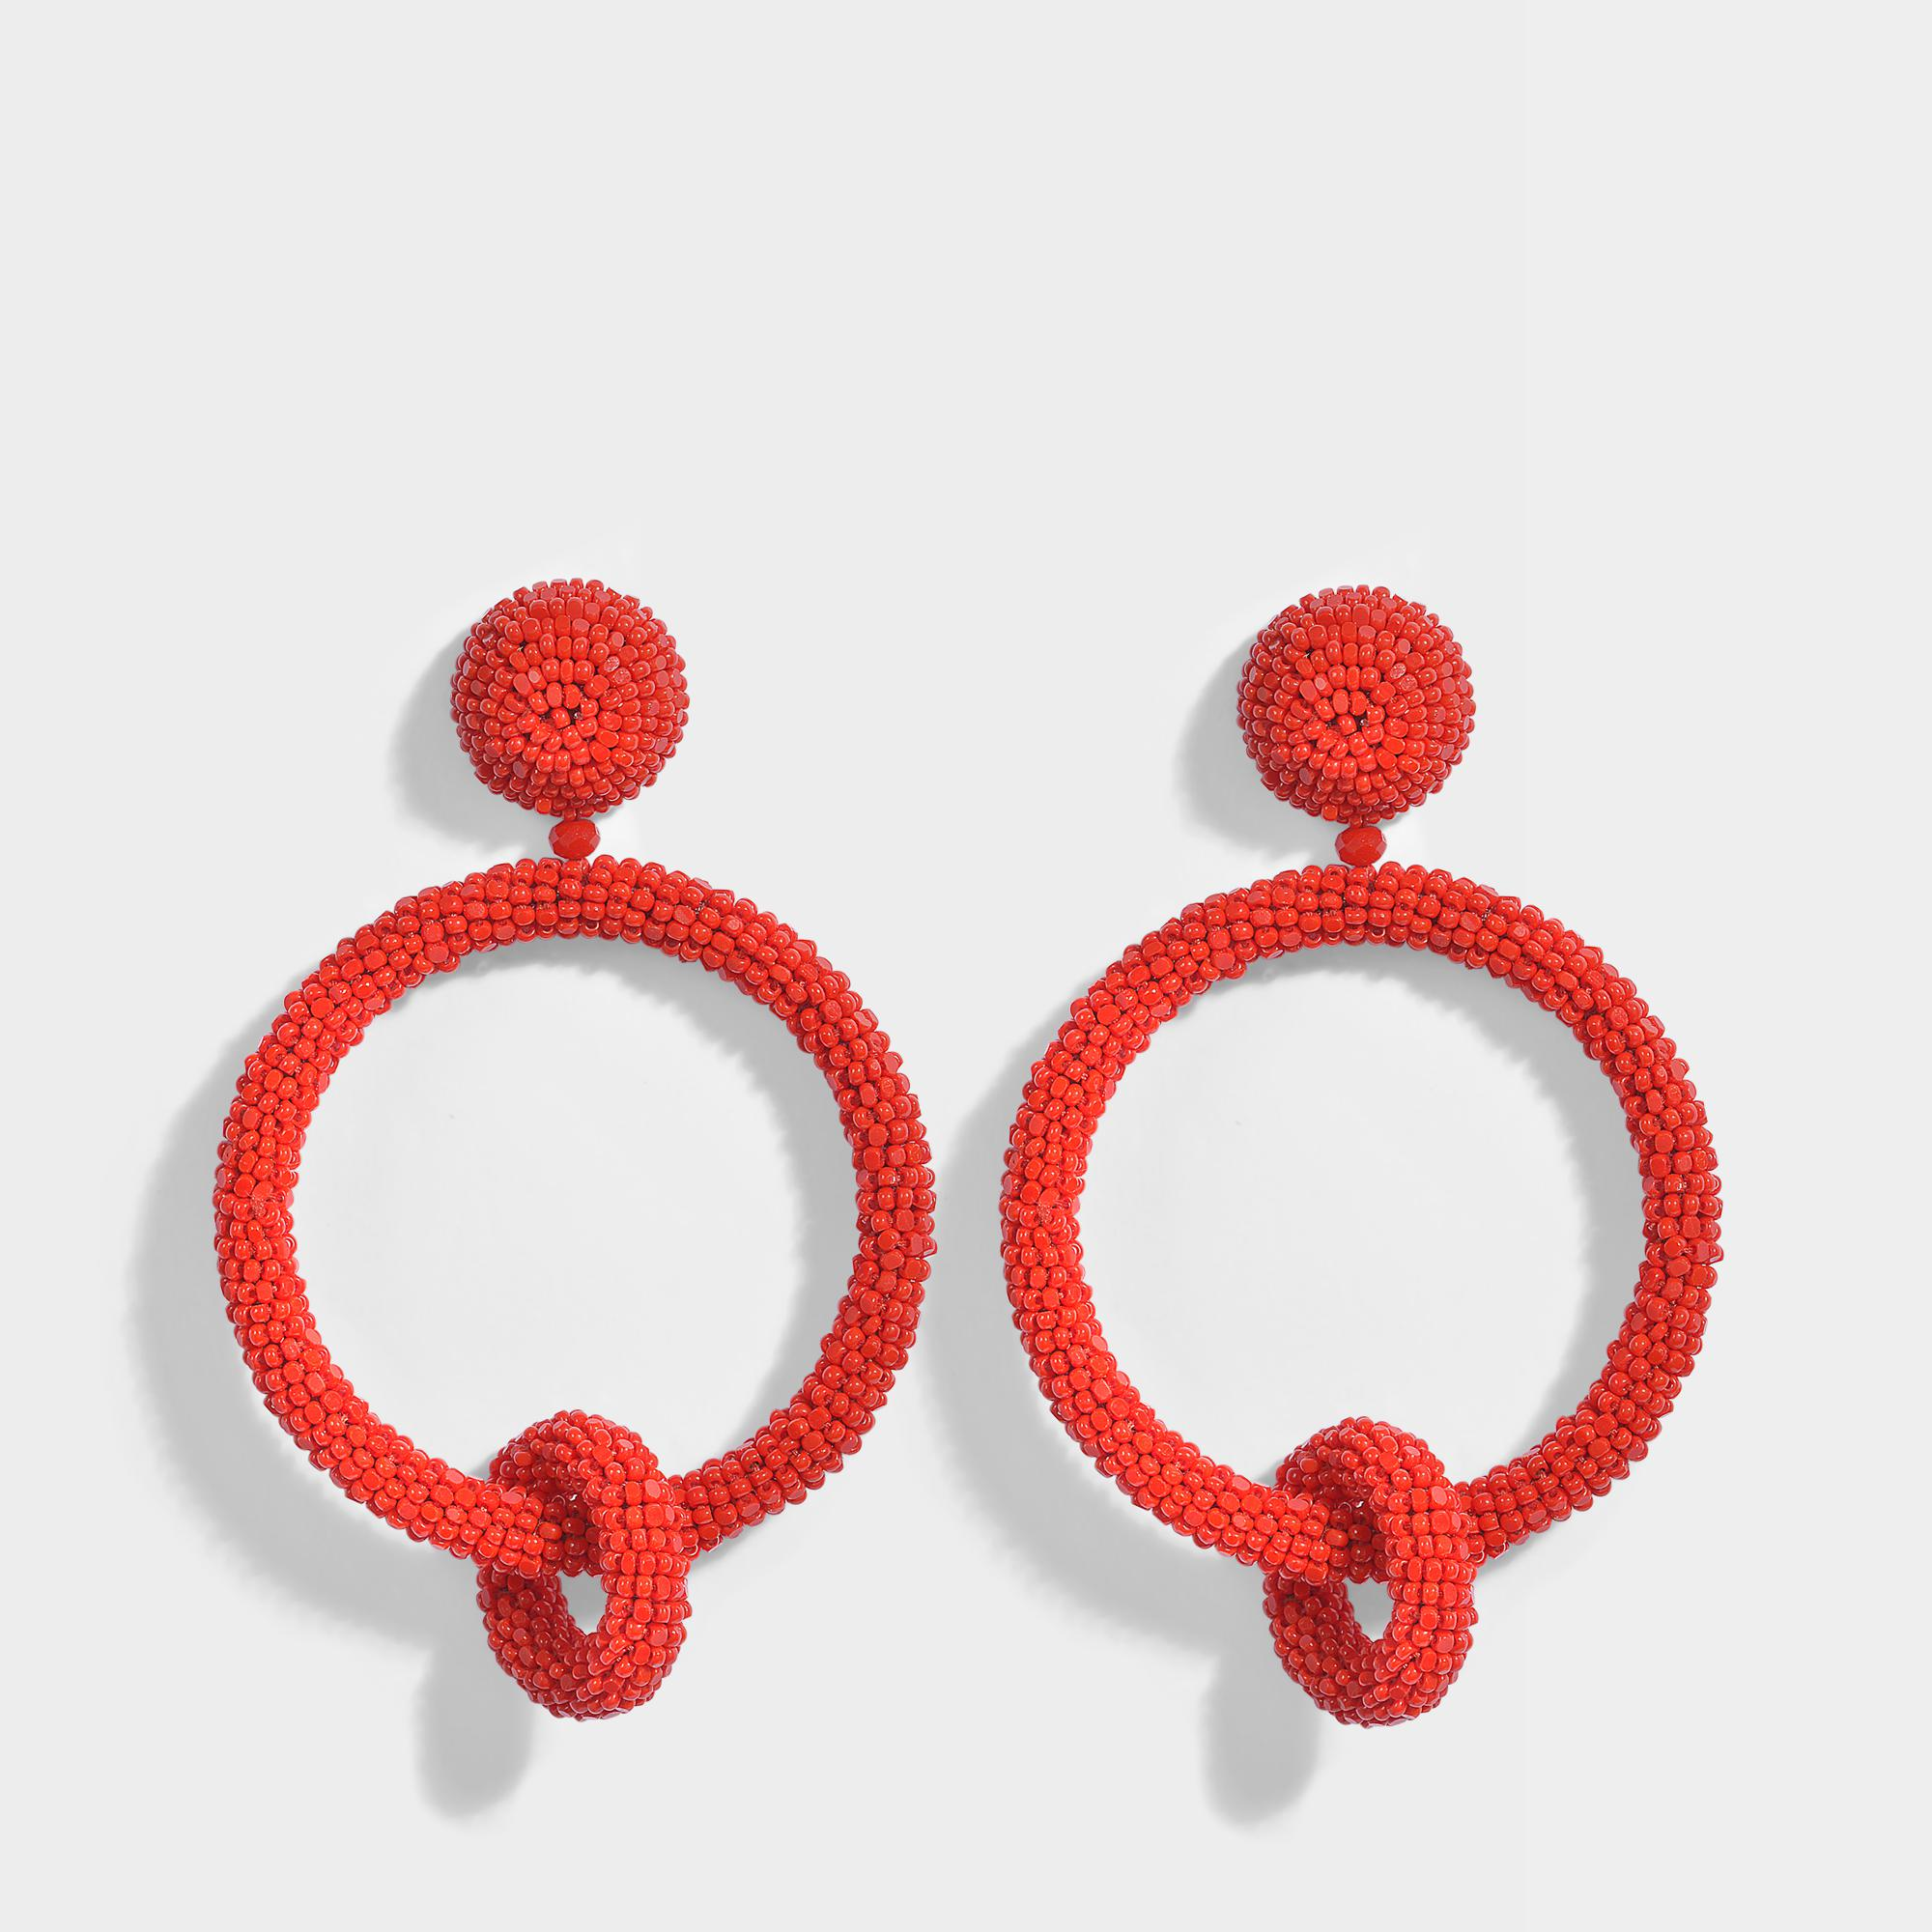 Oscar De La Renta Beaded Double Hoop Clip Earrings in Carmine Synthetic ilS2Lsnv